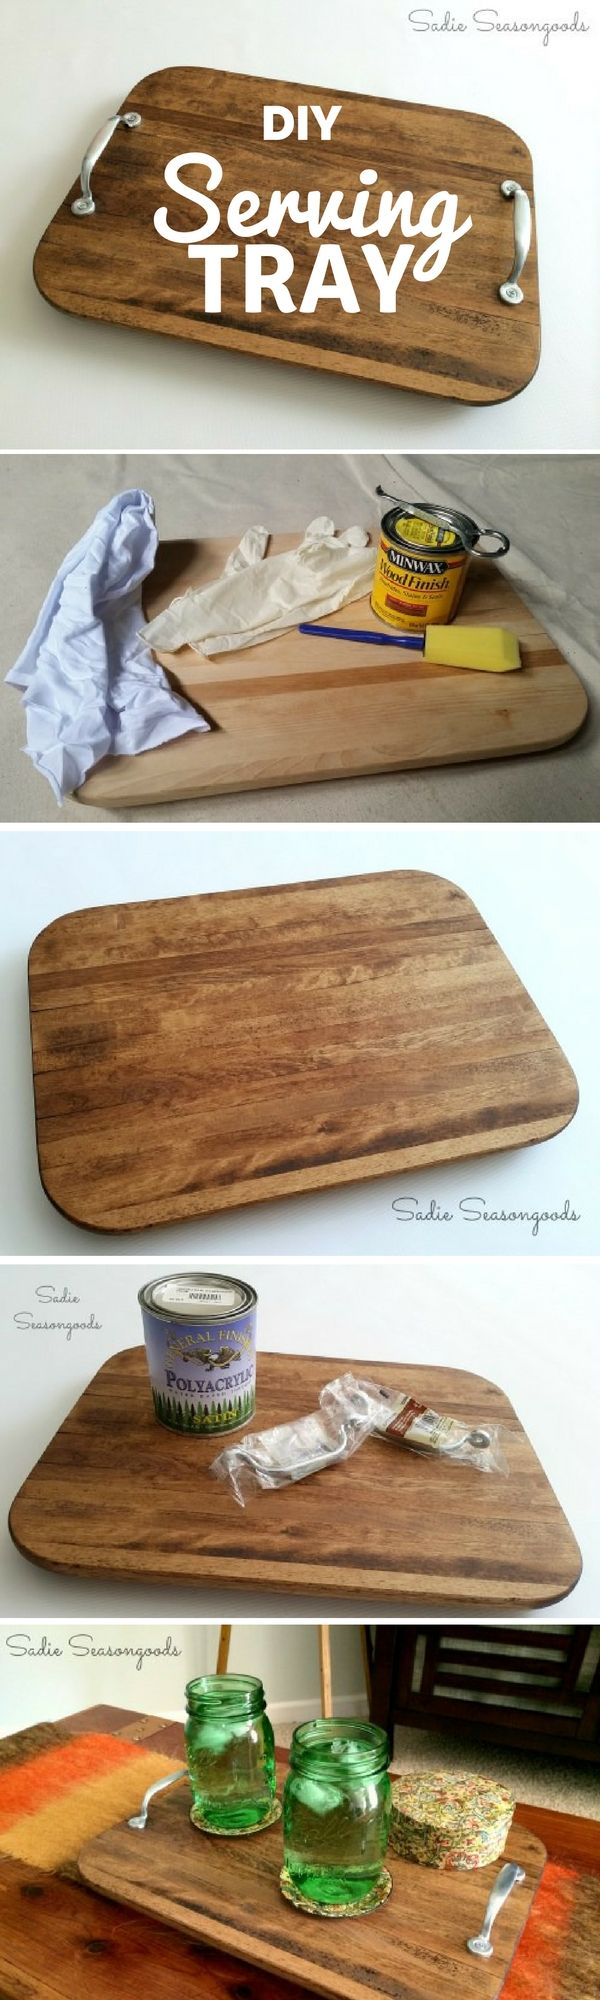 Check out the tutorial: #DIY Farmhouse Serving Tray @istandarddesign